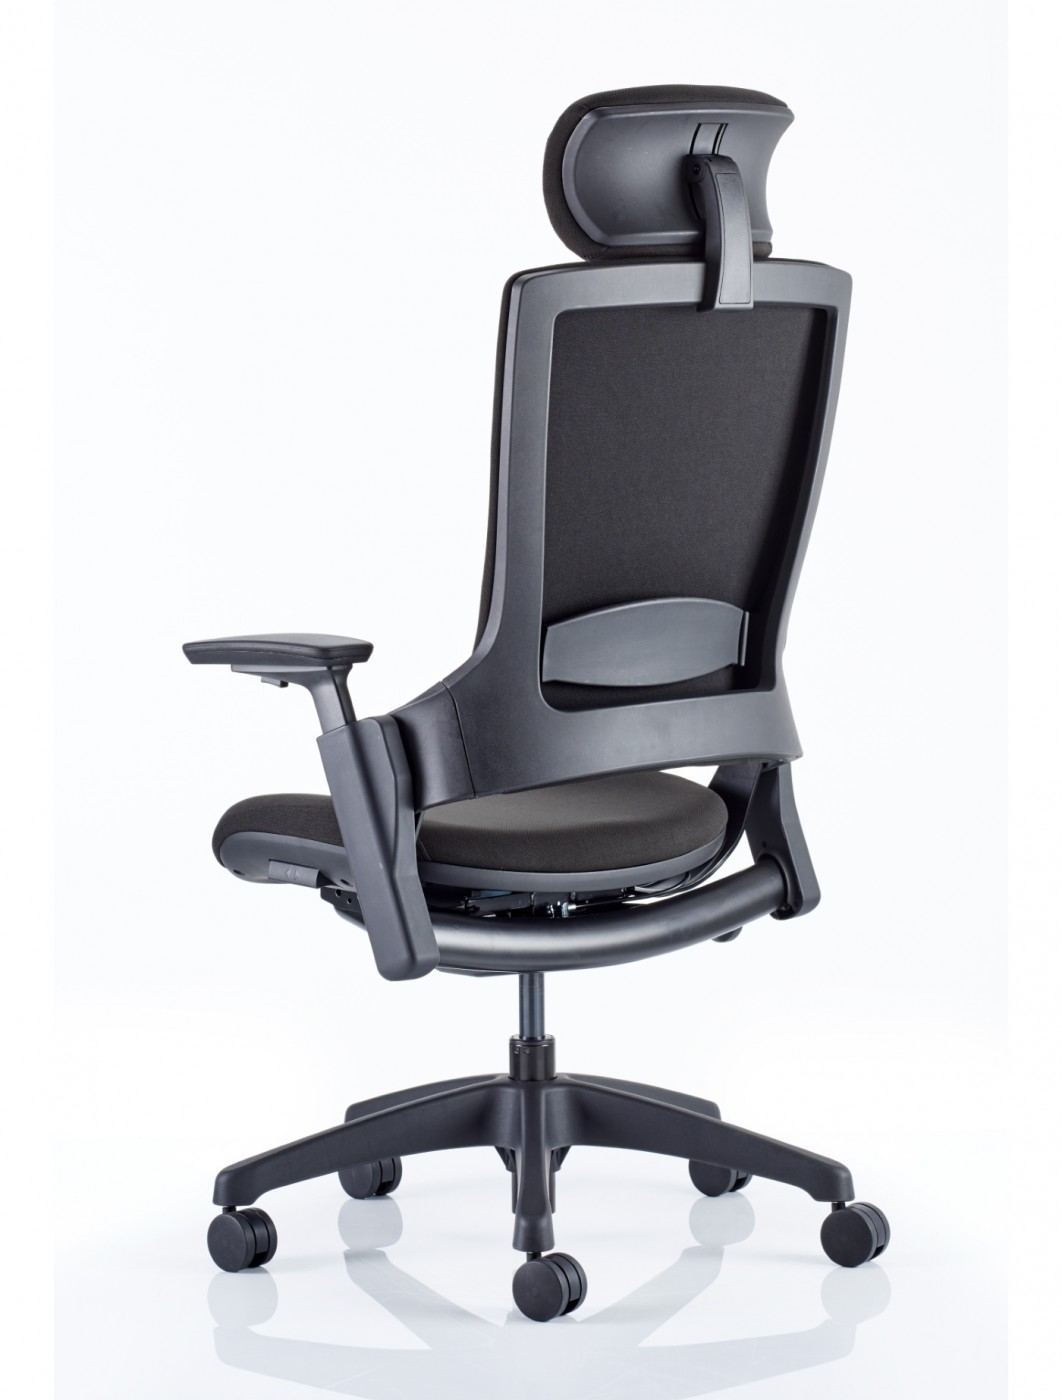 Cloth Covered Office Chairs Office Chairs Molet Task Exec Fabric Office Chair Kc0274